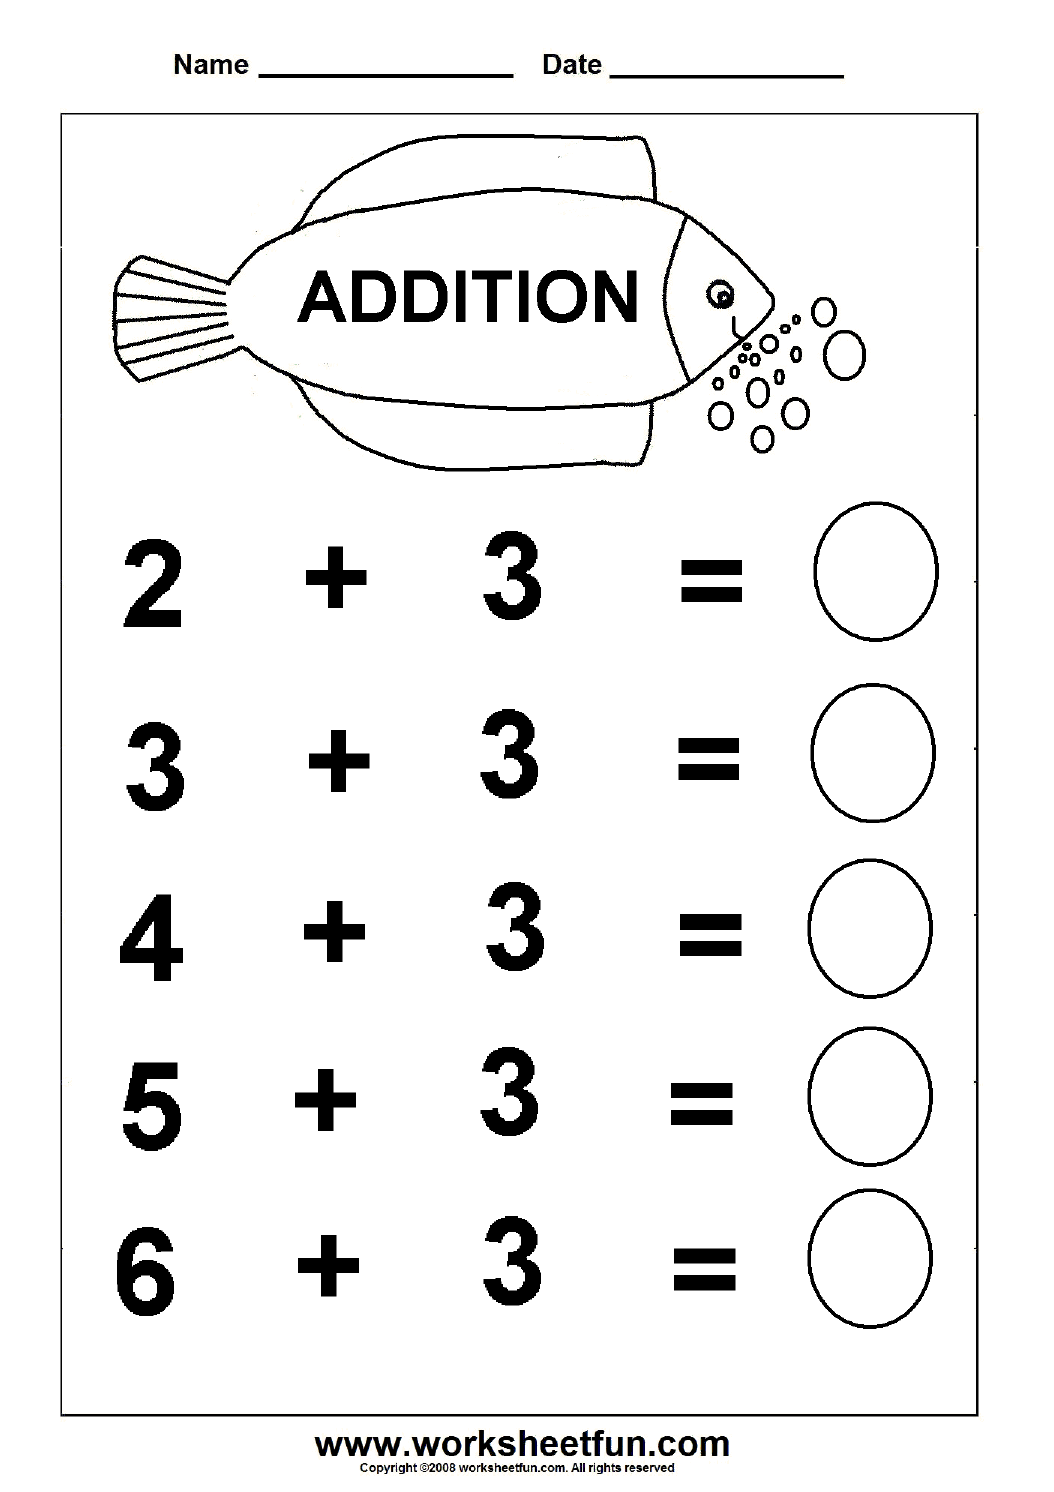 Printables Addition Worksheets For Kindergarten beginner addition 6 kindergarten worksheets free first grade worksheets